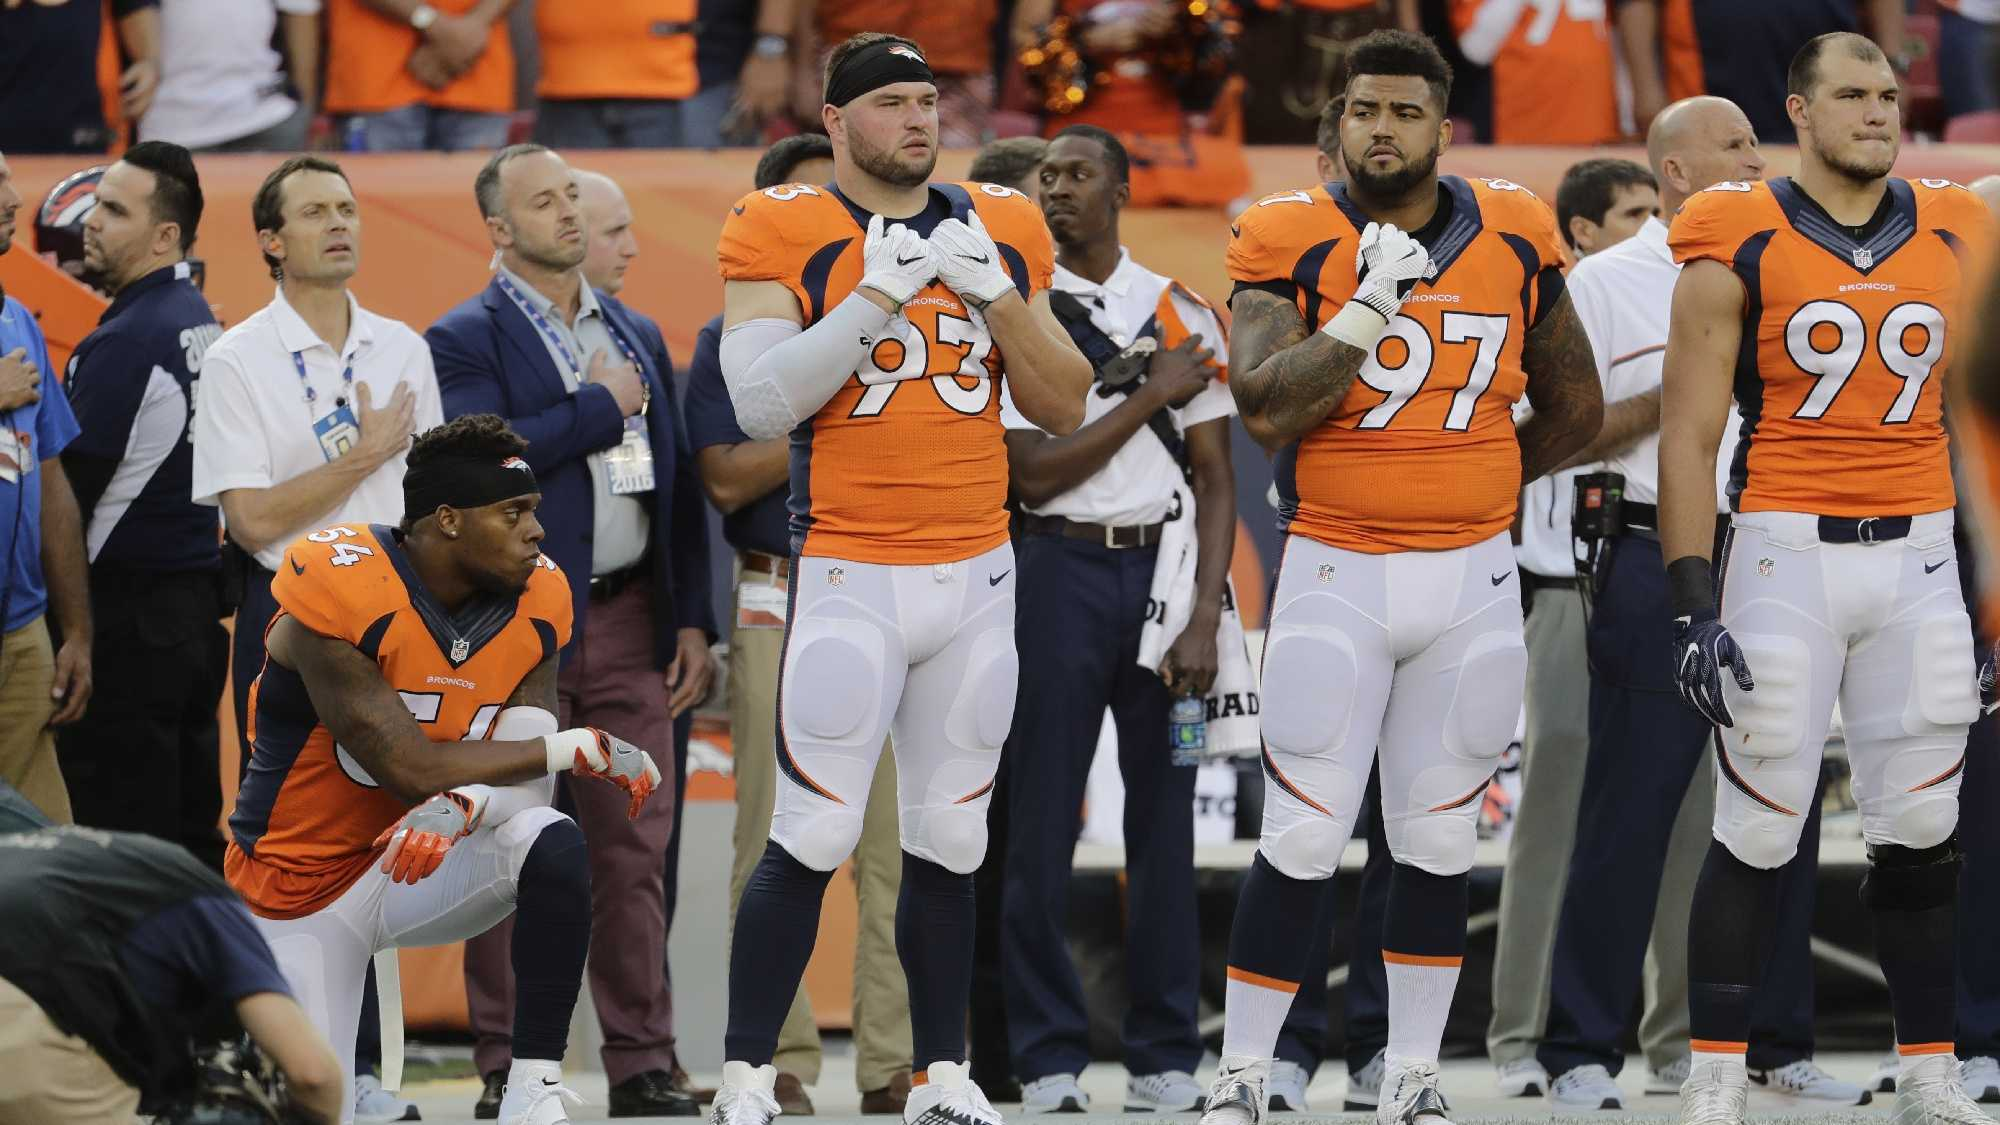 Denver Broncos inside linebacker Brandon Marshall (54) kneels on the sideline during the National Anthem prior to an NFL football game against the Carolina Panthers, Thursday, Sept. 8, 2016, in Denver.